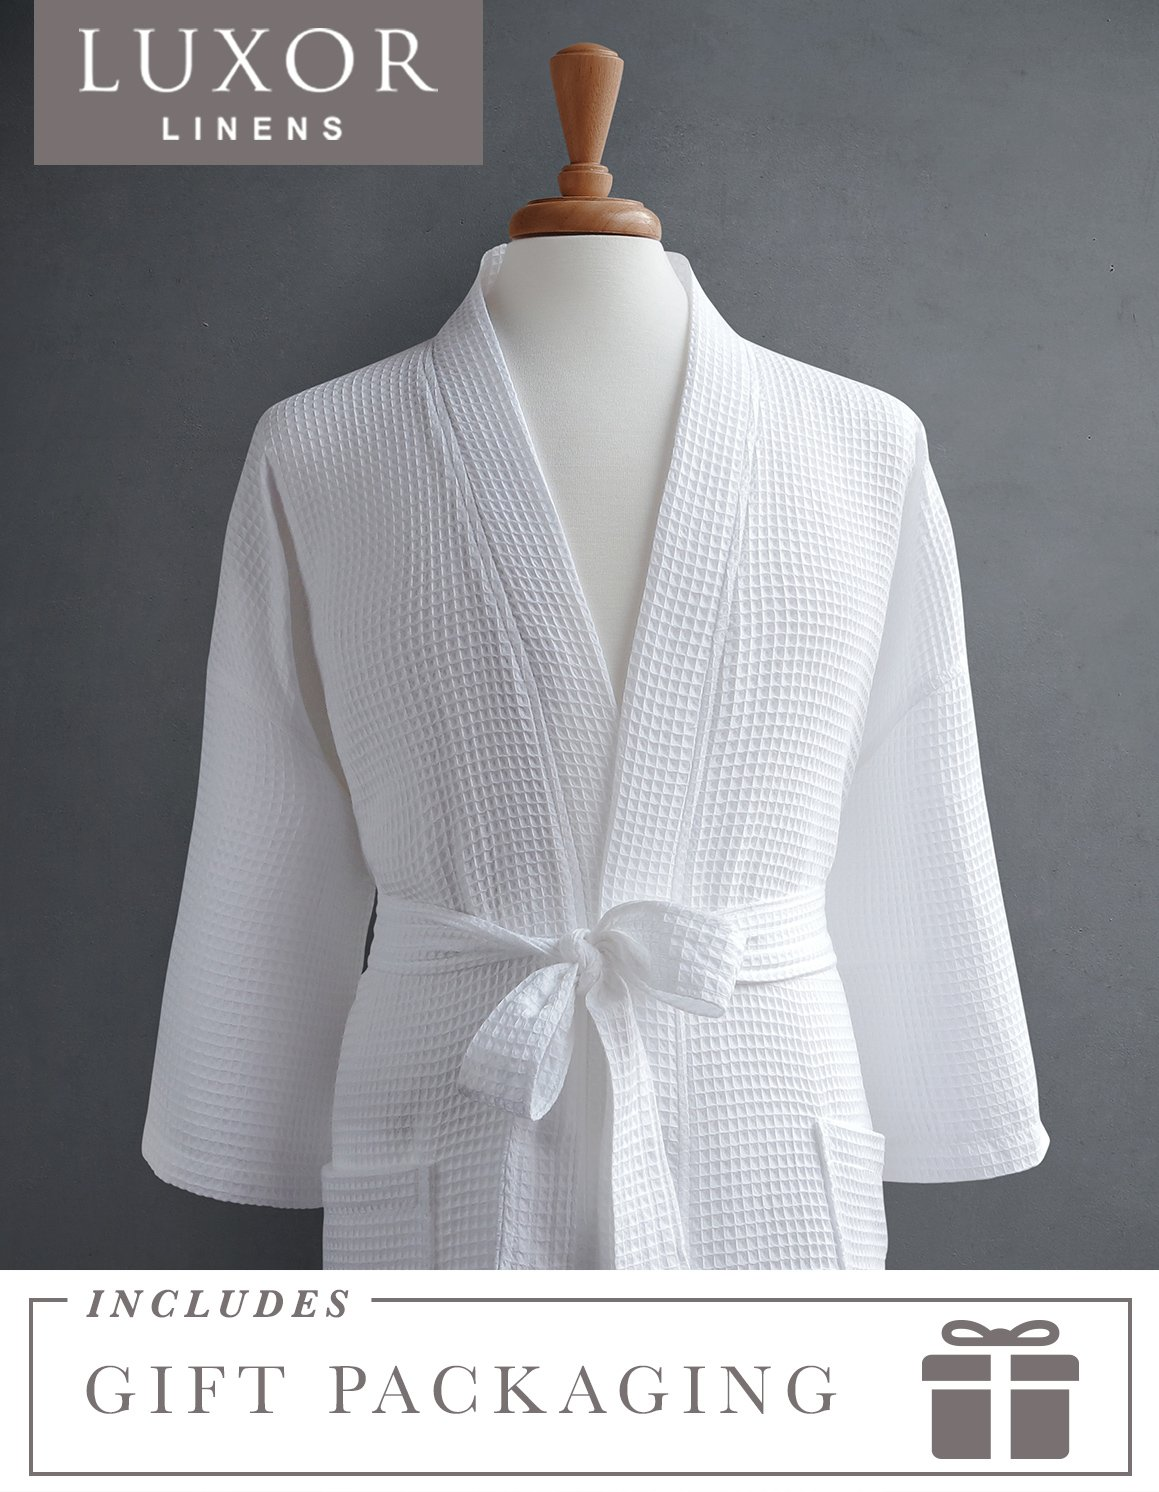 Luxor Linens Waffle Weave Spa Bathrobe - Ciragan Collection - Luxurious, Super Soft, Plush & Lightweight - 100% Egyptian Cotton, Made in Turkey (Single Robe With Gift Packaging, No Monogram)